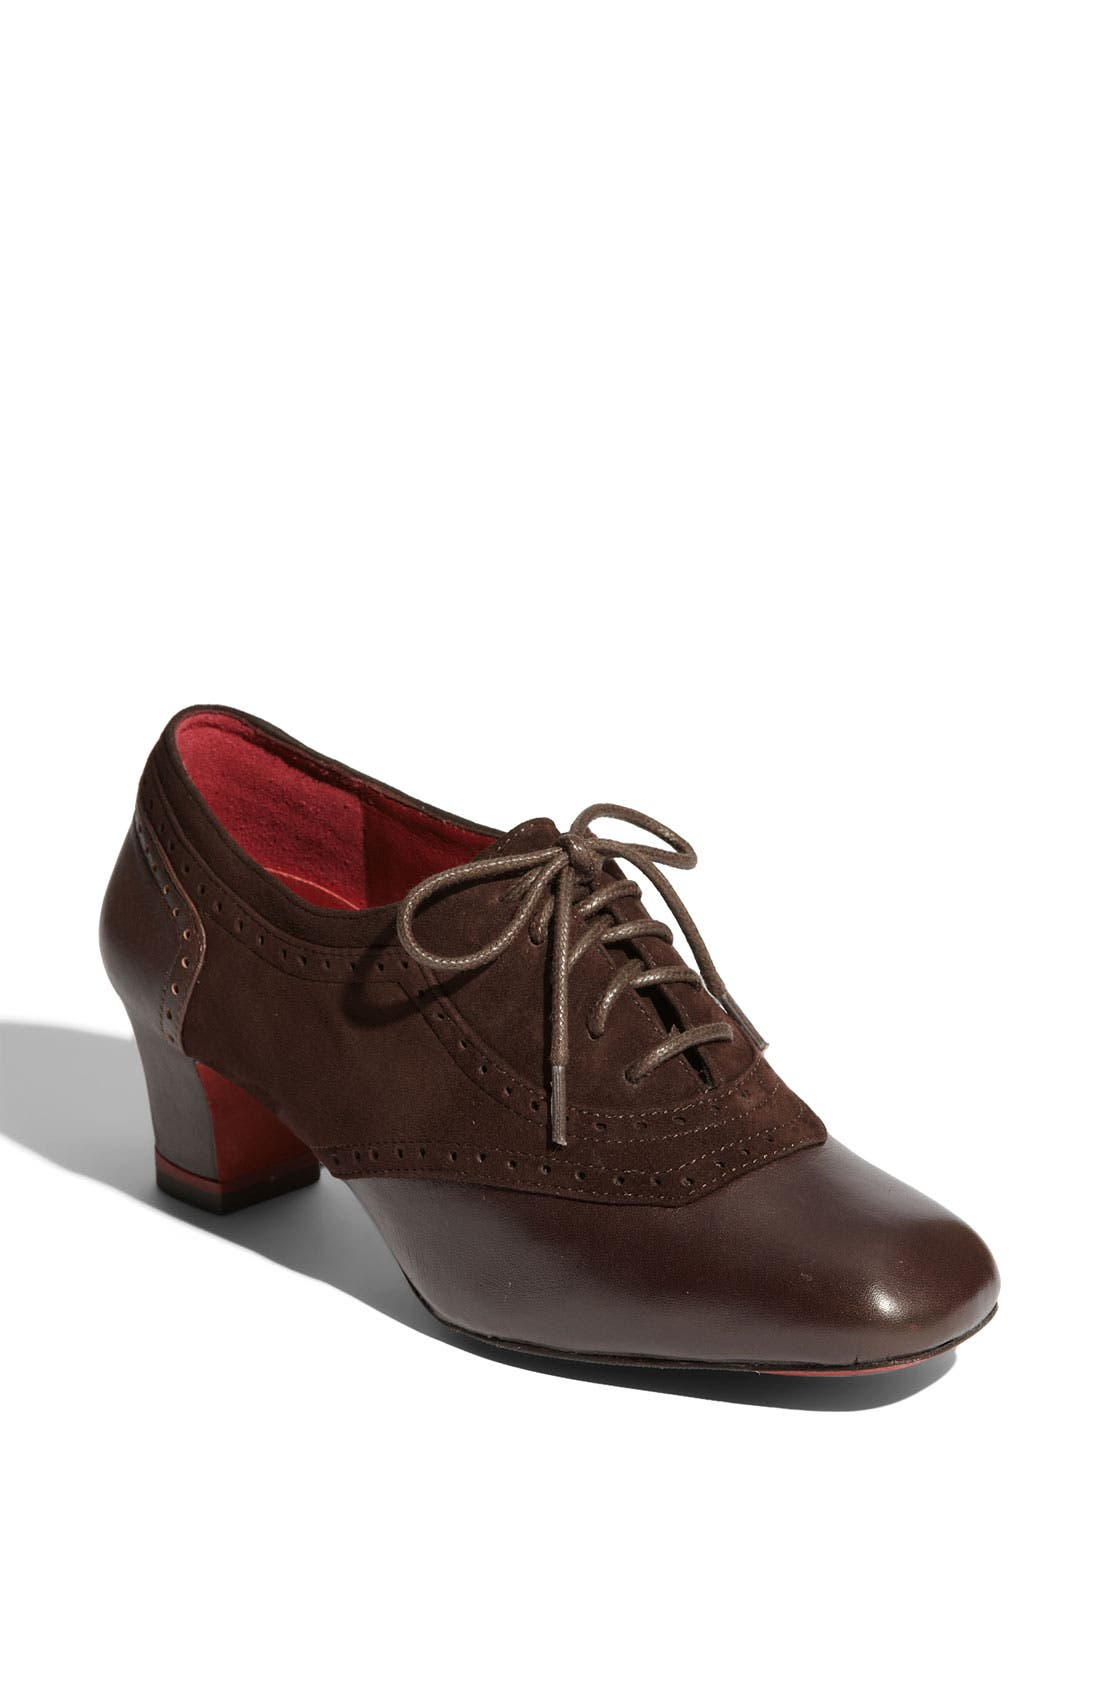 Alternate Image 1 Selected - Oh! Shoes 'Minerva' Oxford Pump